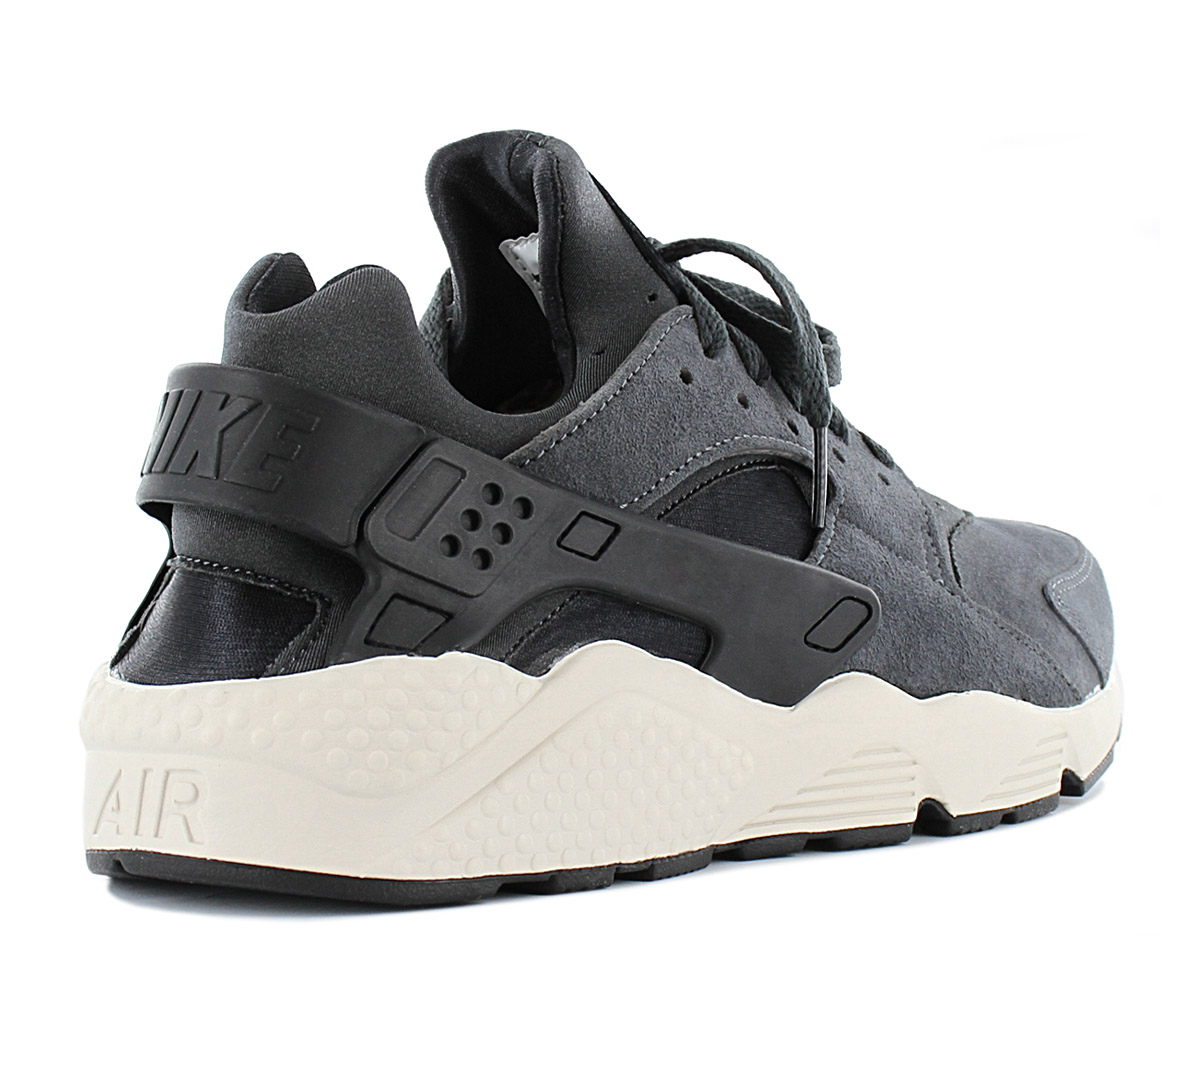 b9511a8ff571 Nike Air Huarache Run Premium Mens Sneakers Leather Shoes 704830-016 ...